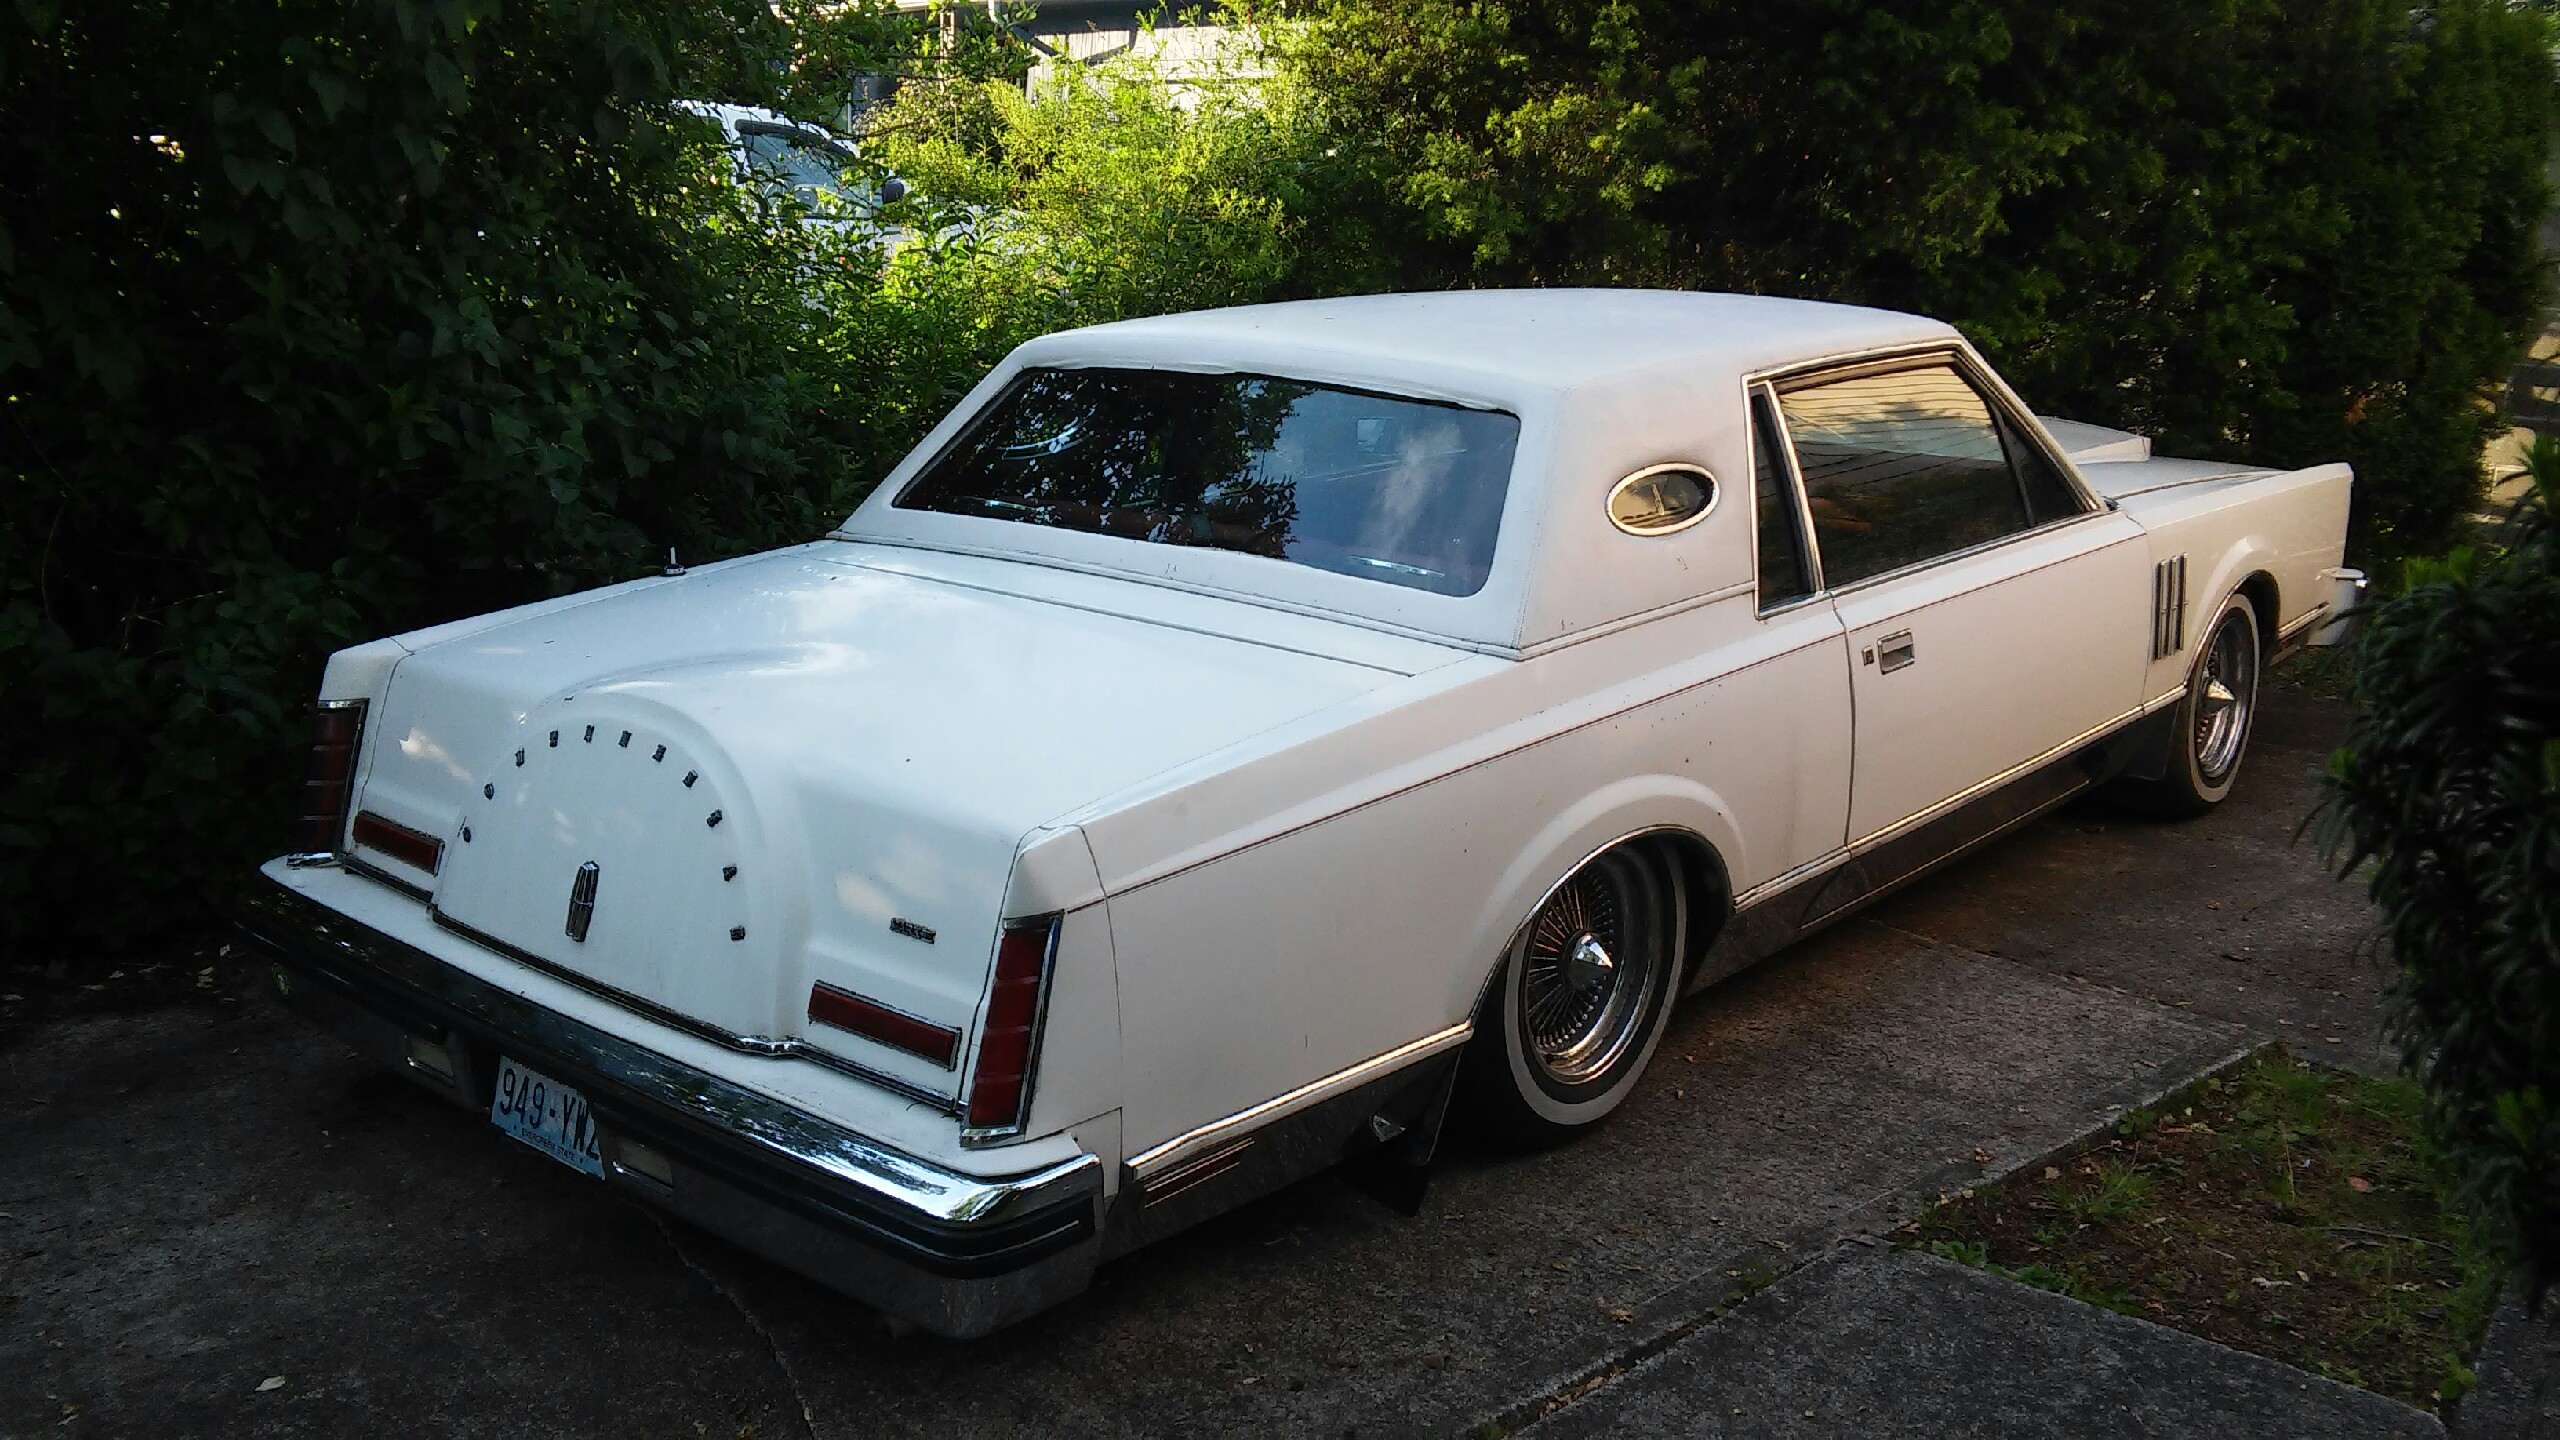 337807 Fascinating Lincoln Continental Used In Hit and Run Cars Trend